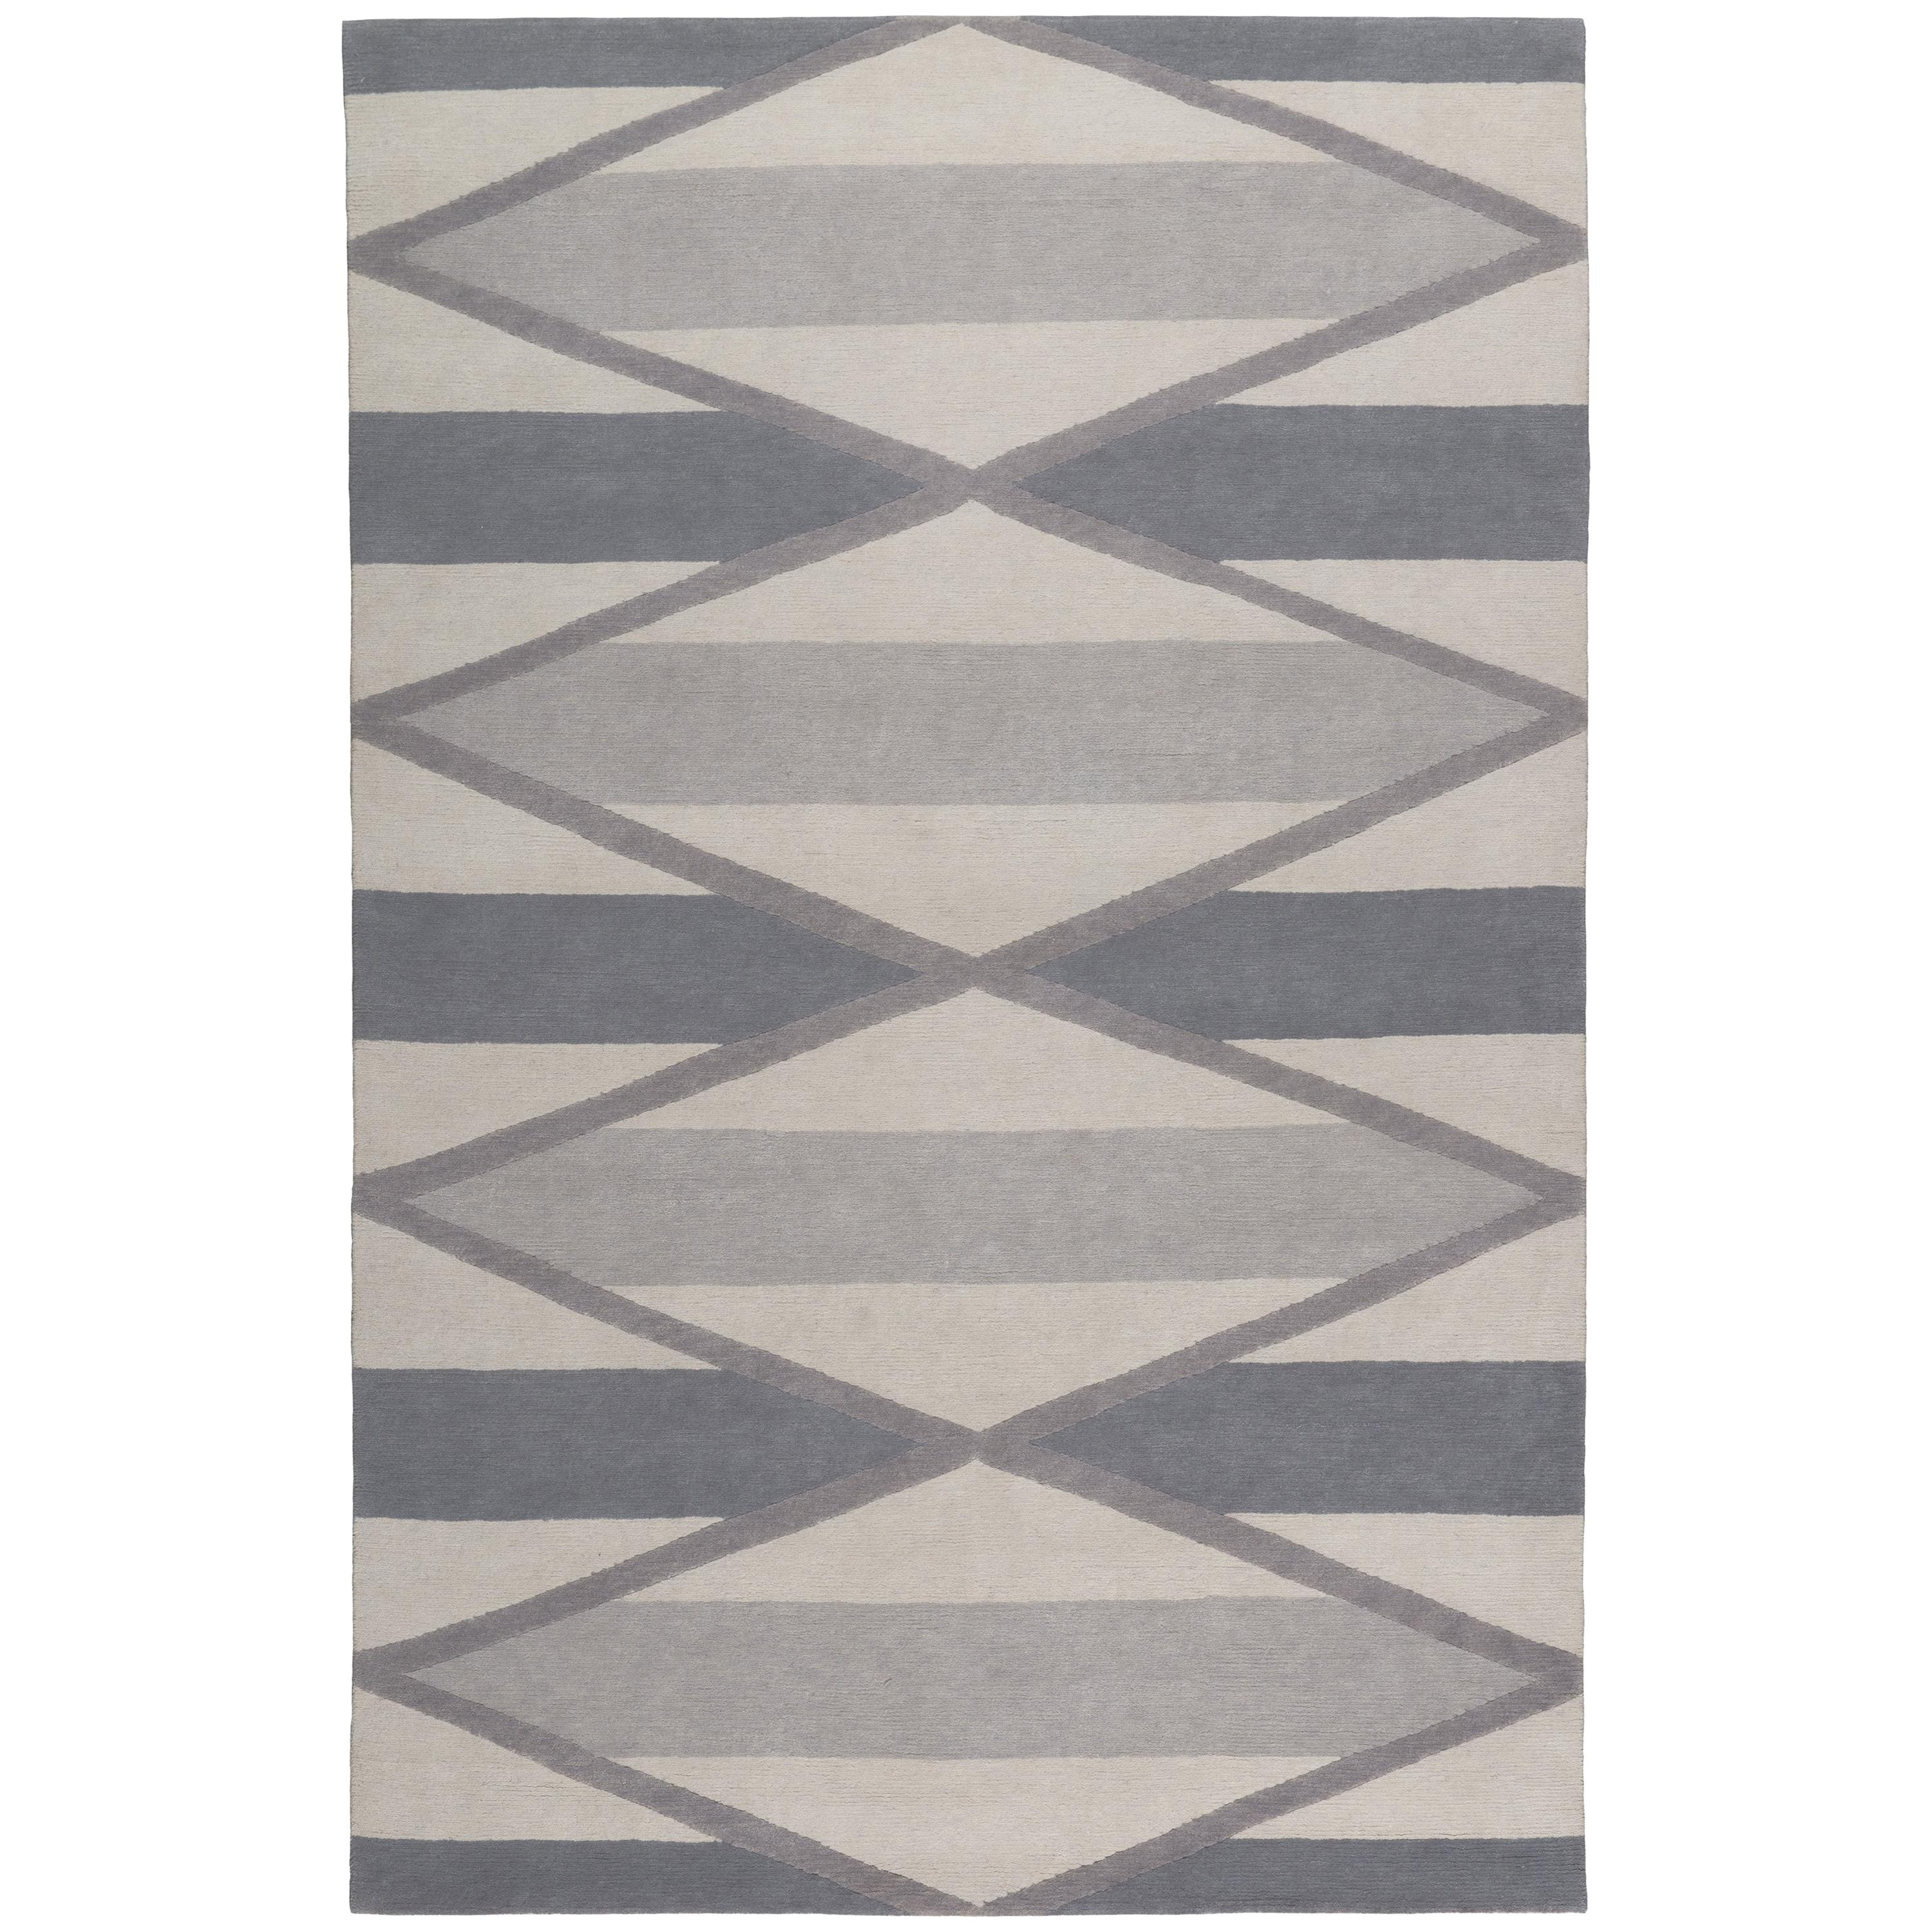 Taos Hand-Knotted 10x8 Rug in Wool by Katrin Cargill